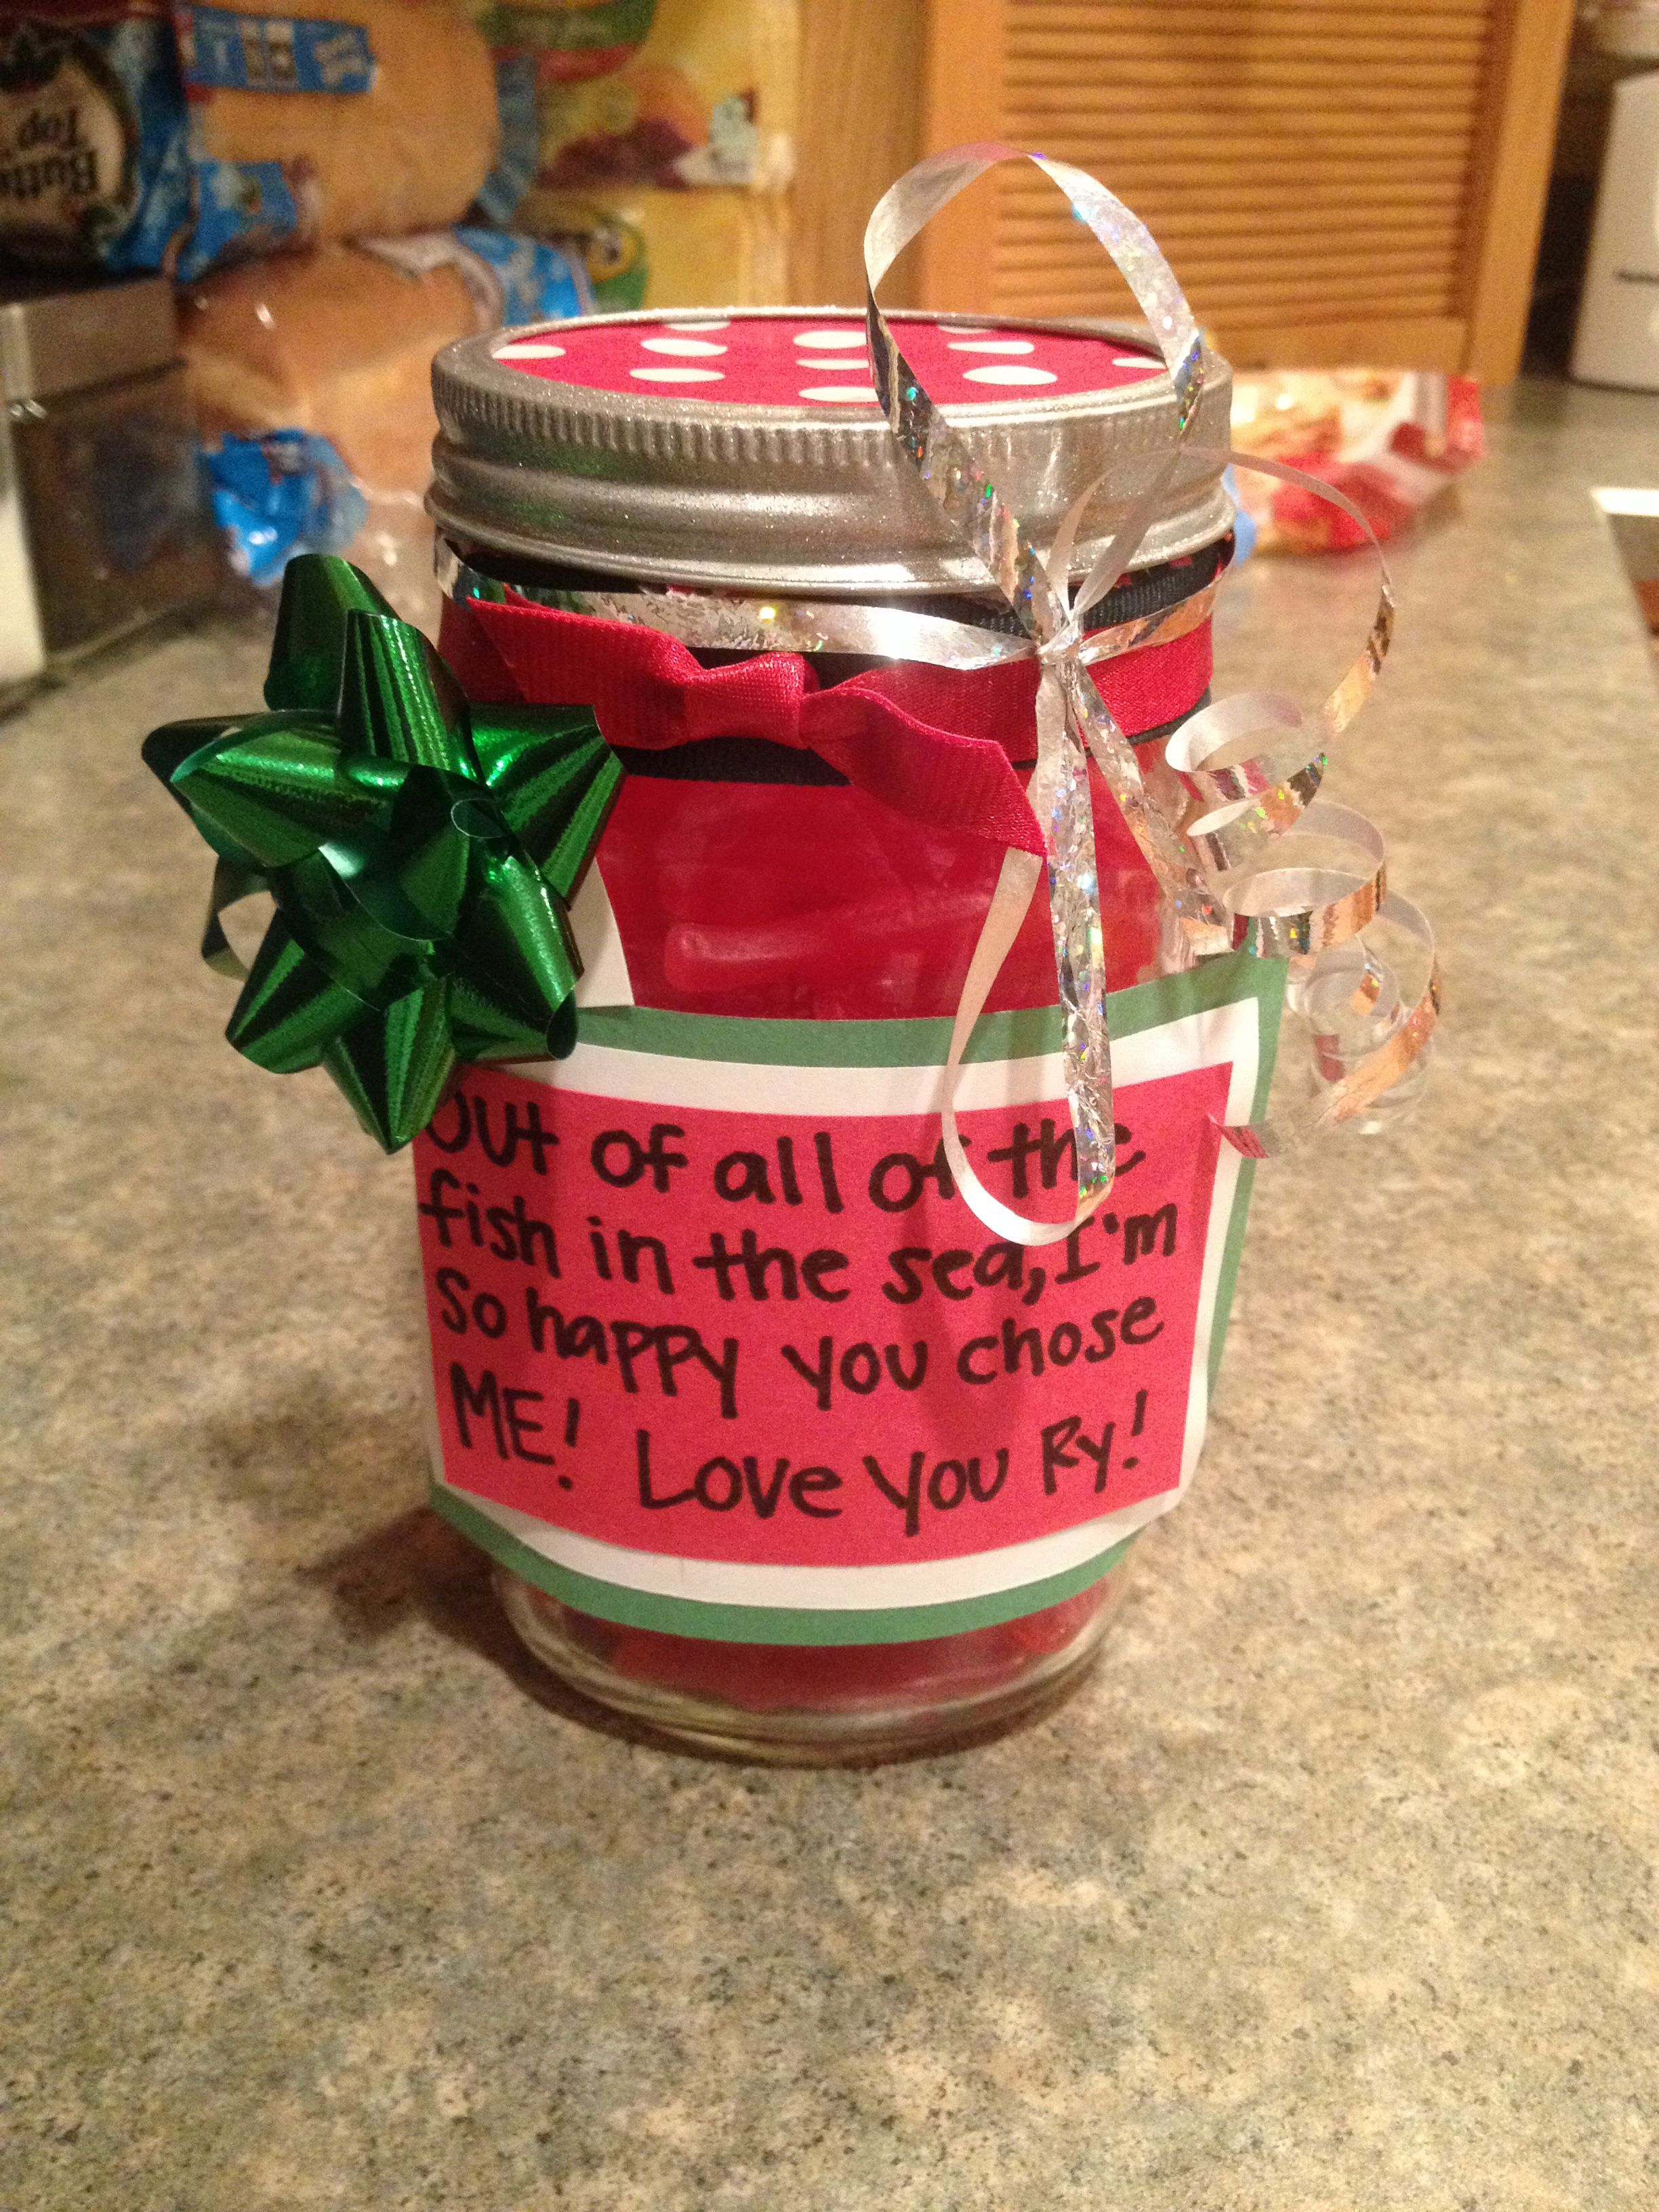 Diy Christmas Present For The Boyfriend Mason Jar Filled With Sweetish Fish Diy Christmas Presents Christmas Mason Jars Diy Christmas Ideas For Boyfriend